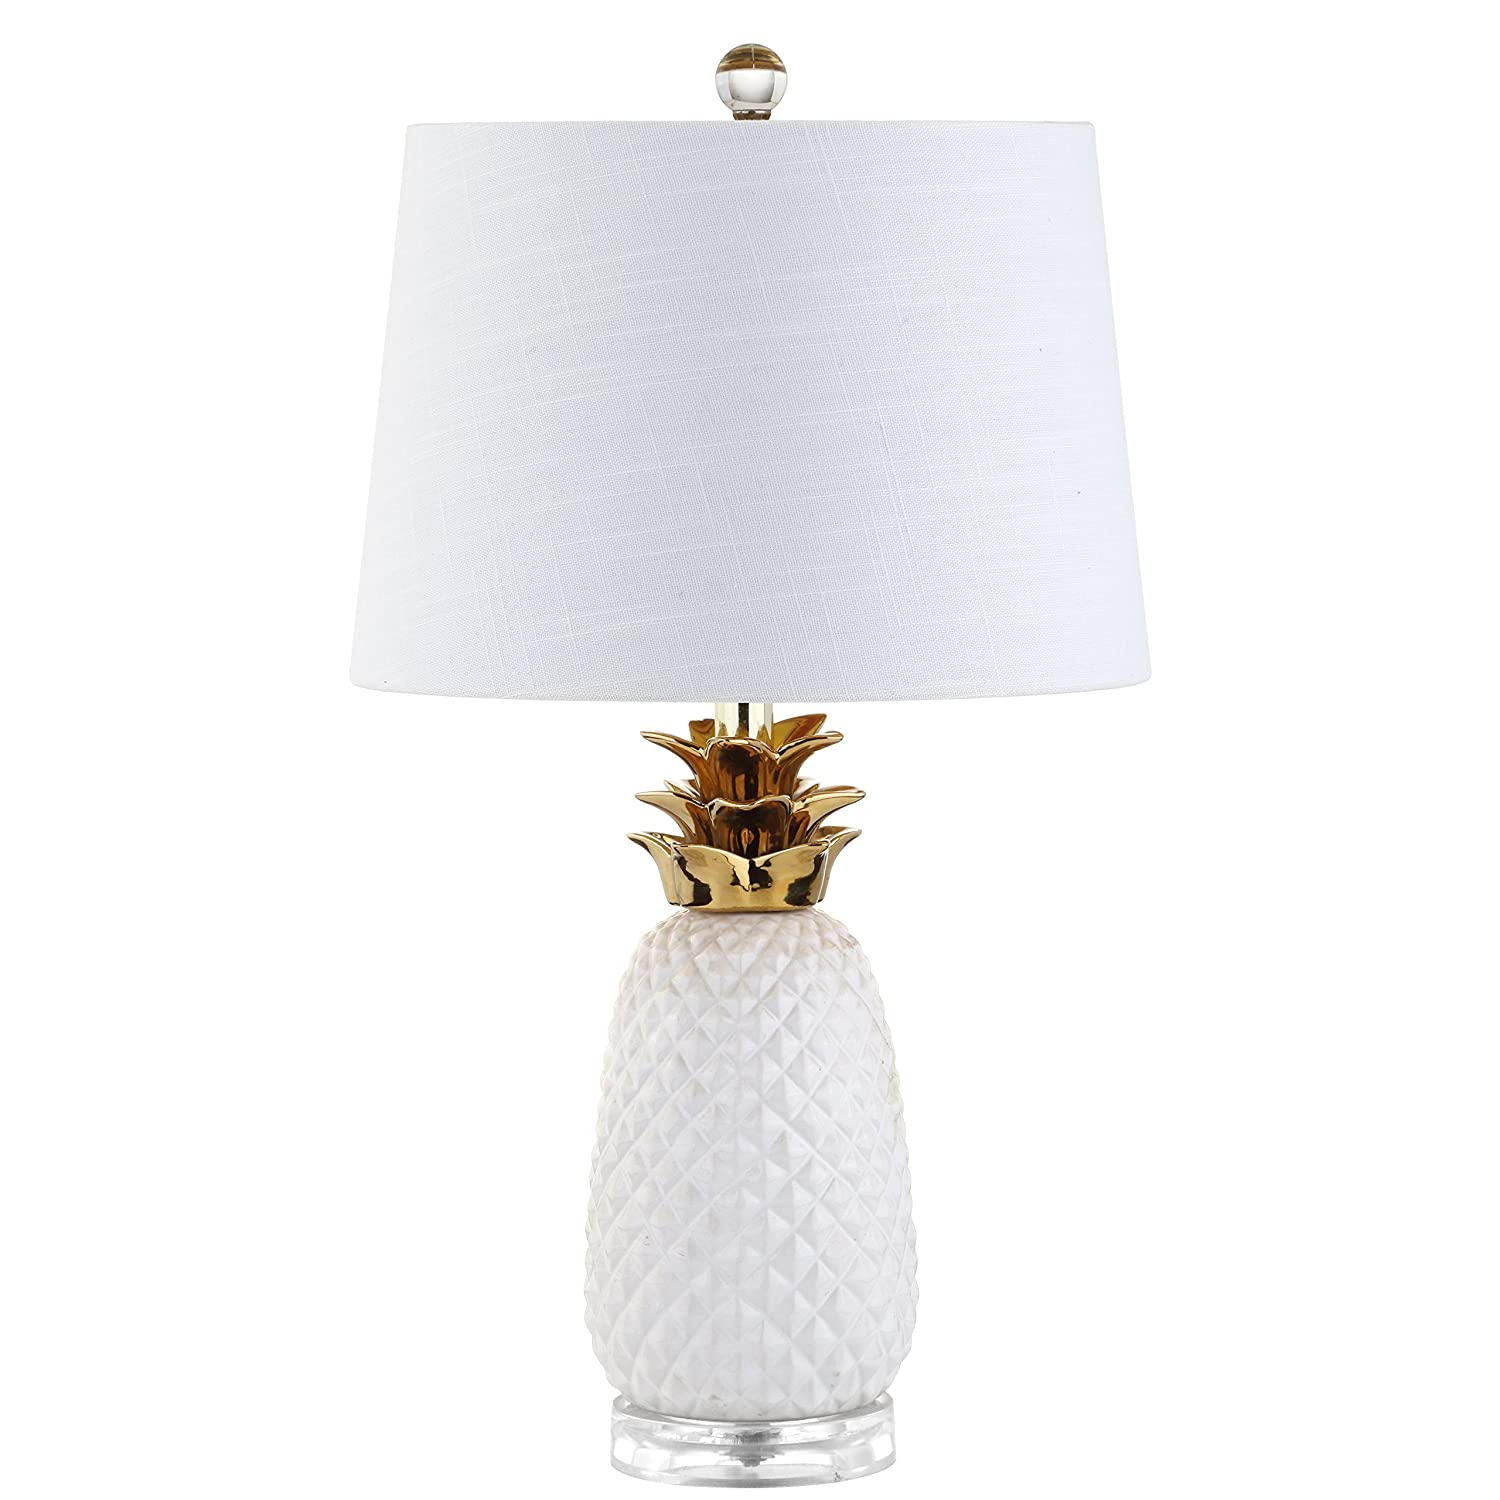 """Pineapple 23"""" Ceramic LED Table Lamp, White/Gold, Modern, Contemporary, Bulb Included"""